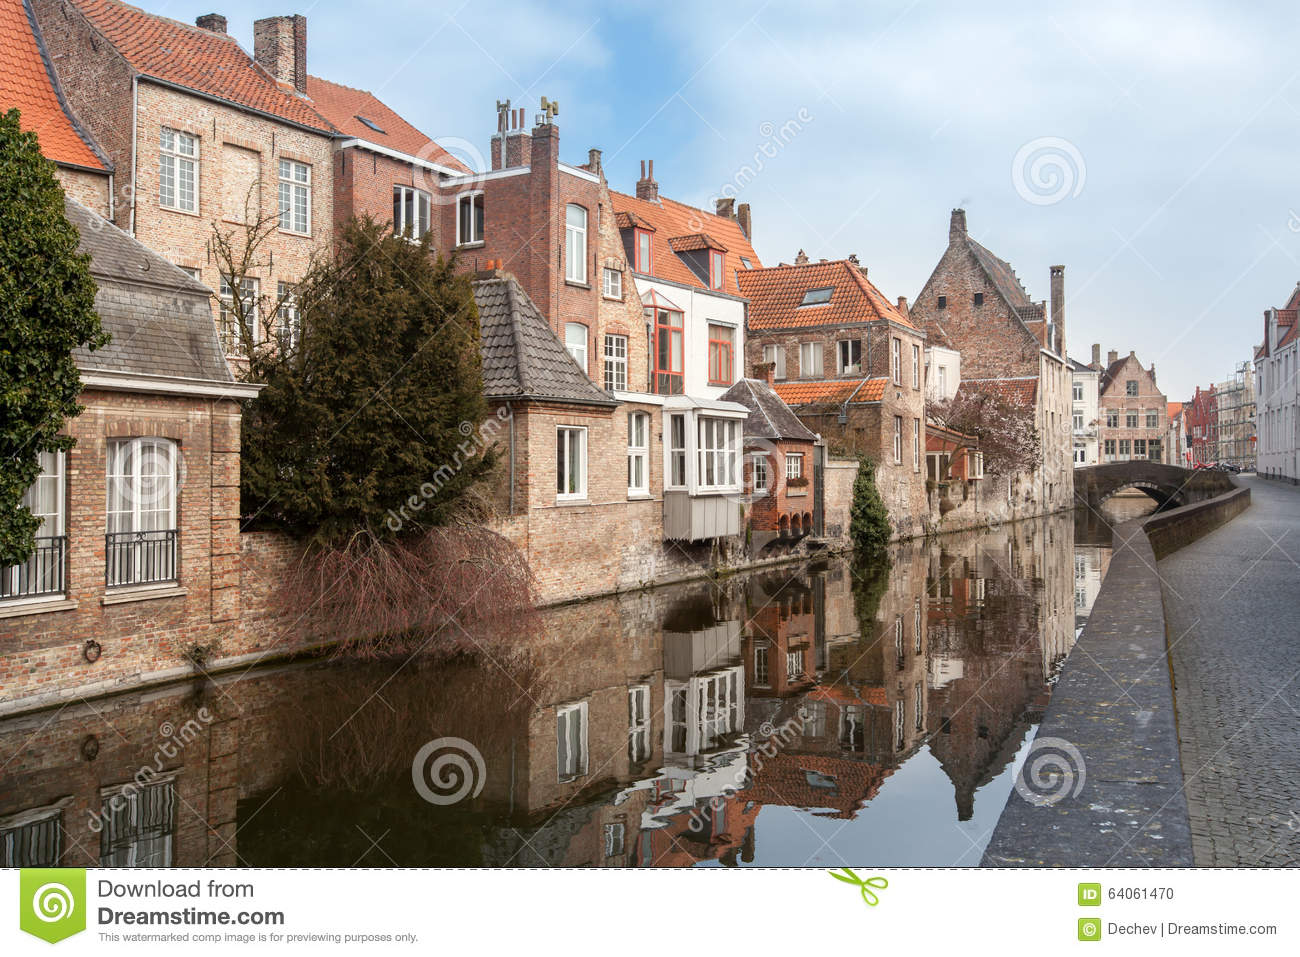 belles maisons le long des canaux de bruges belgique. Black Bedroom Furniture Sets. Home Design Ideas